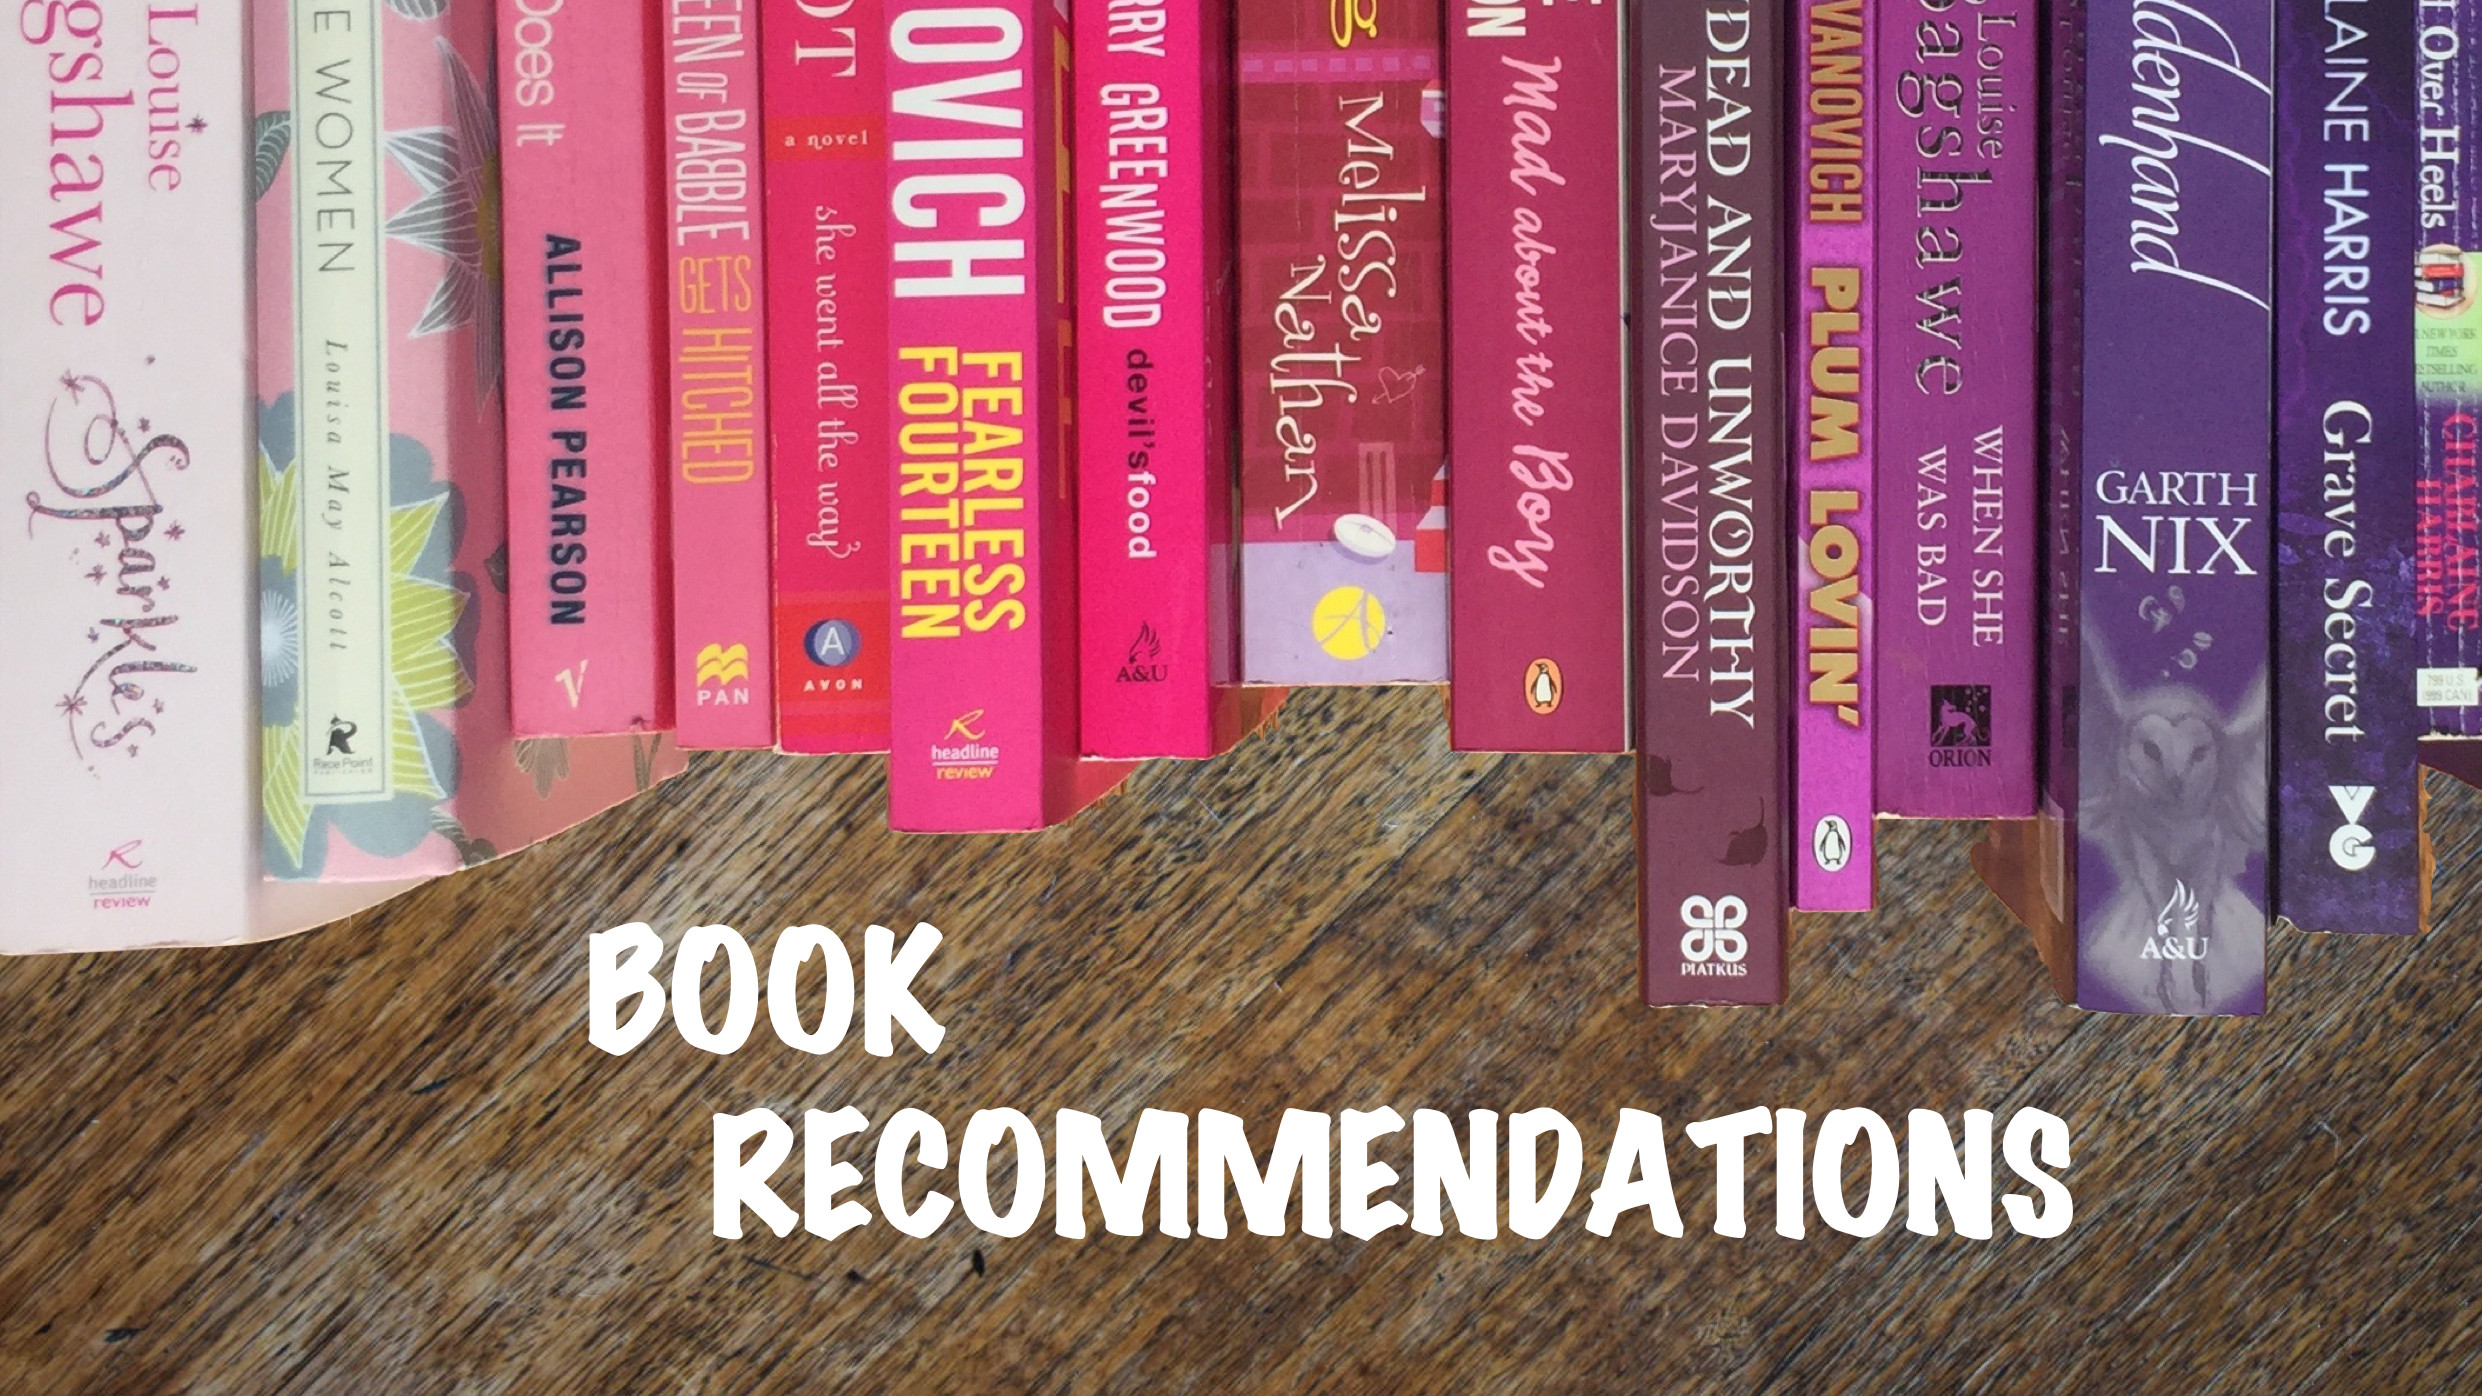 Book Recommendations Banner with pink and purple book spines